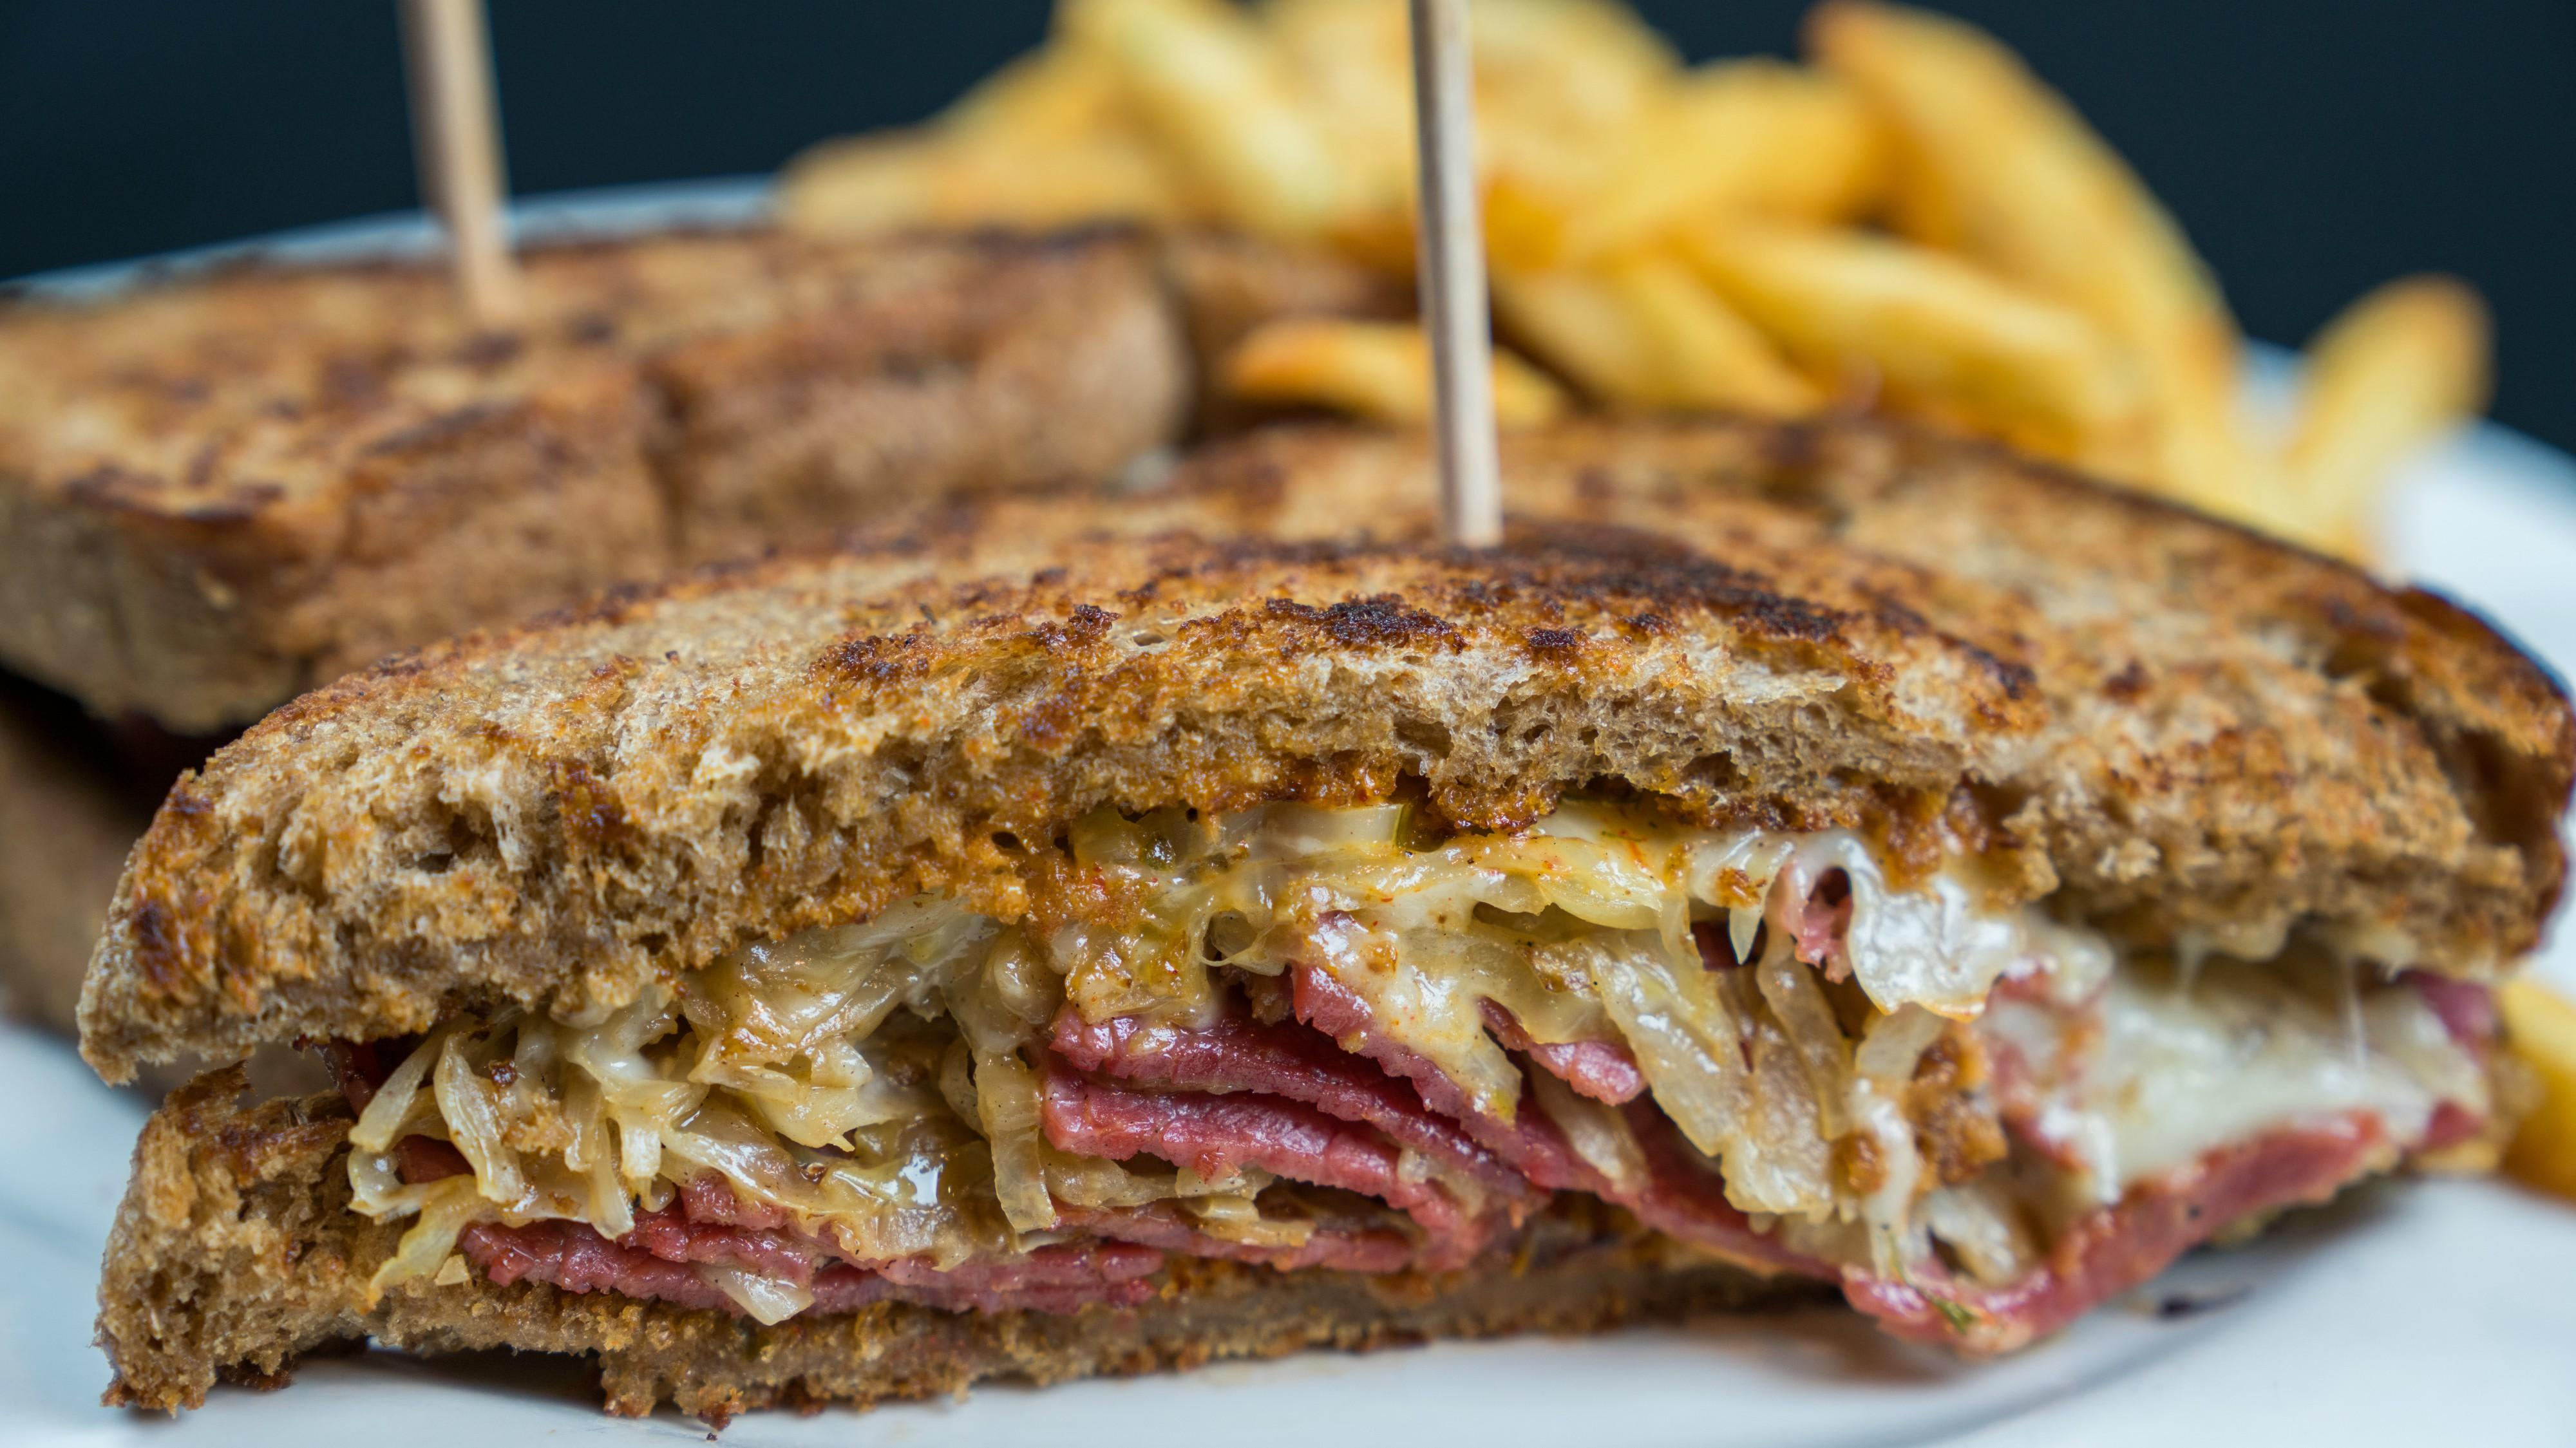 Reuben with Giddy-Up House-made corned beef & cider sauerkraut, 1,000 island dressing, Jarlsberg cheese, fresh pickled jalapeños on Amanda's rye bread at Tonto Bar & Grill